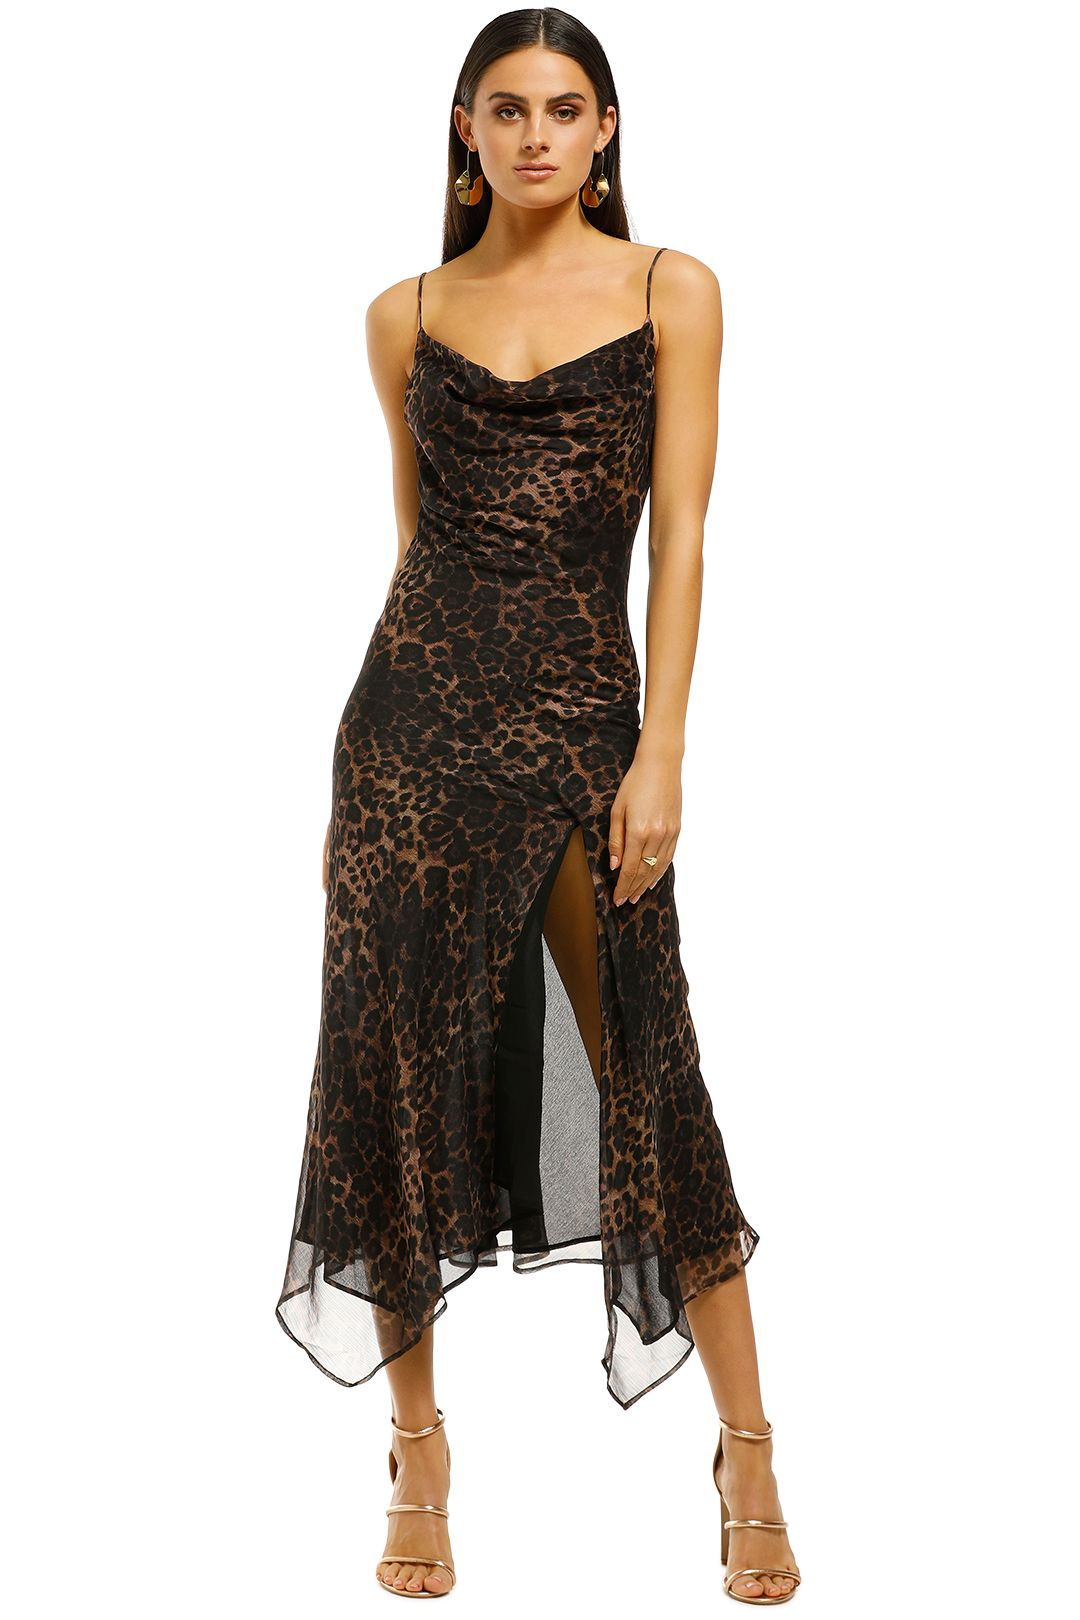 Misha-Collection-Johanna-Dress-Leopard-Front